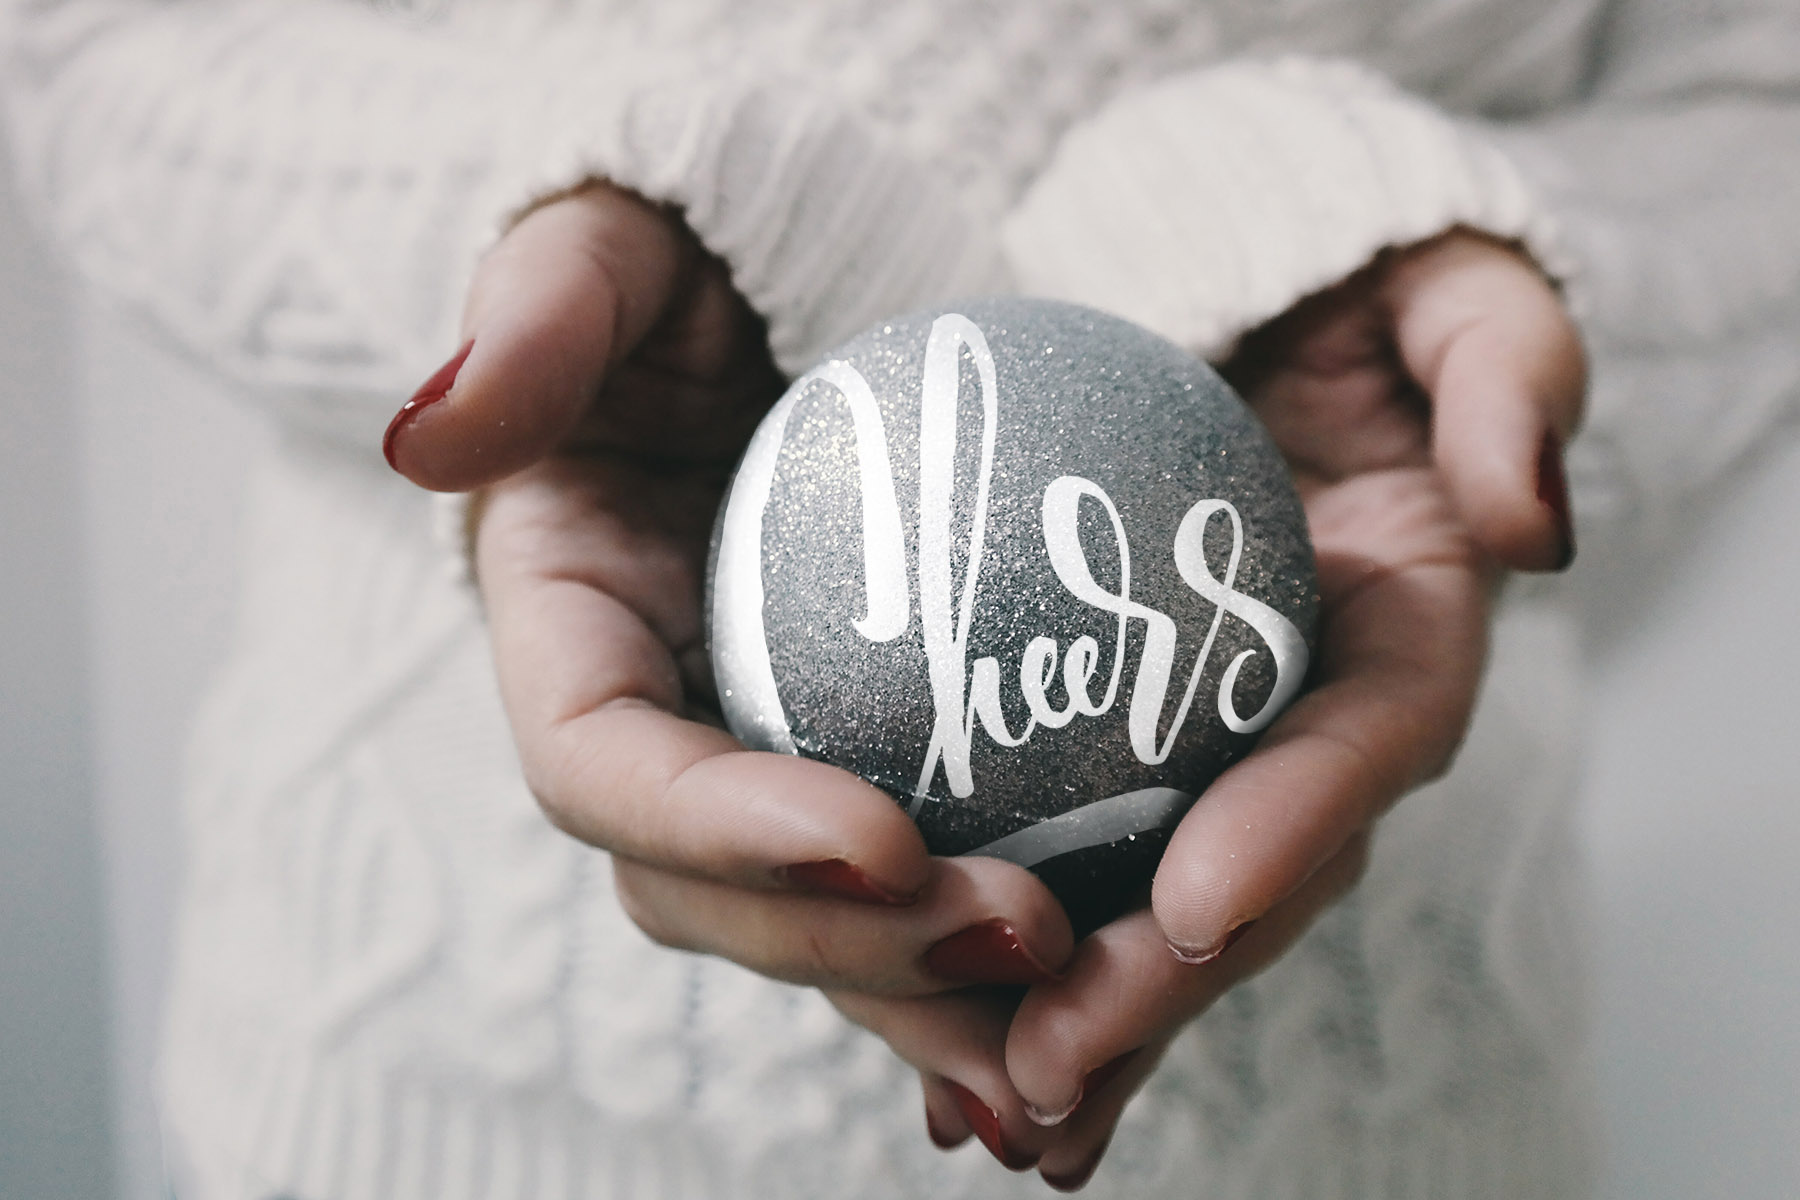 A collection of Christmas Overlays with lettering designs by Type and Graphics Lab |  https://crmrkt.com/OMQk8   Photo credit: Brigitte Tohm | Source: unsplash.com